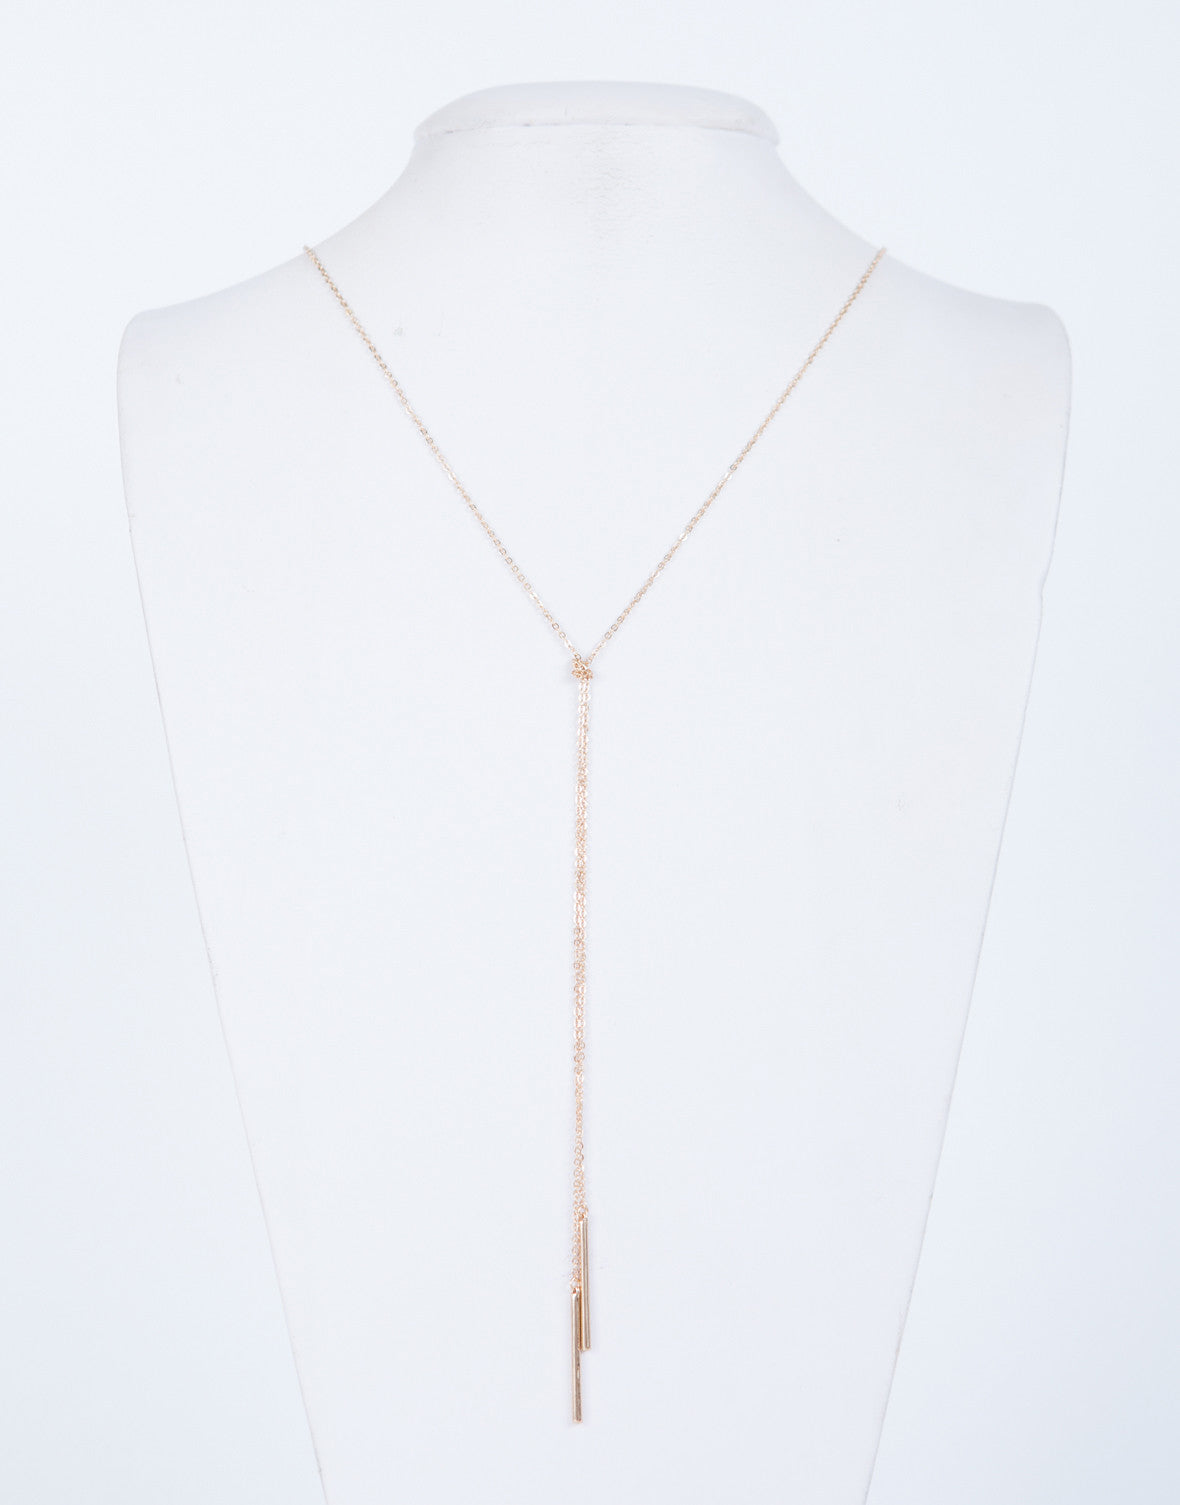 Dainty Knotted Necklace